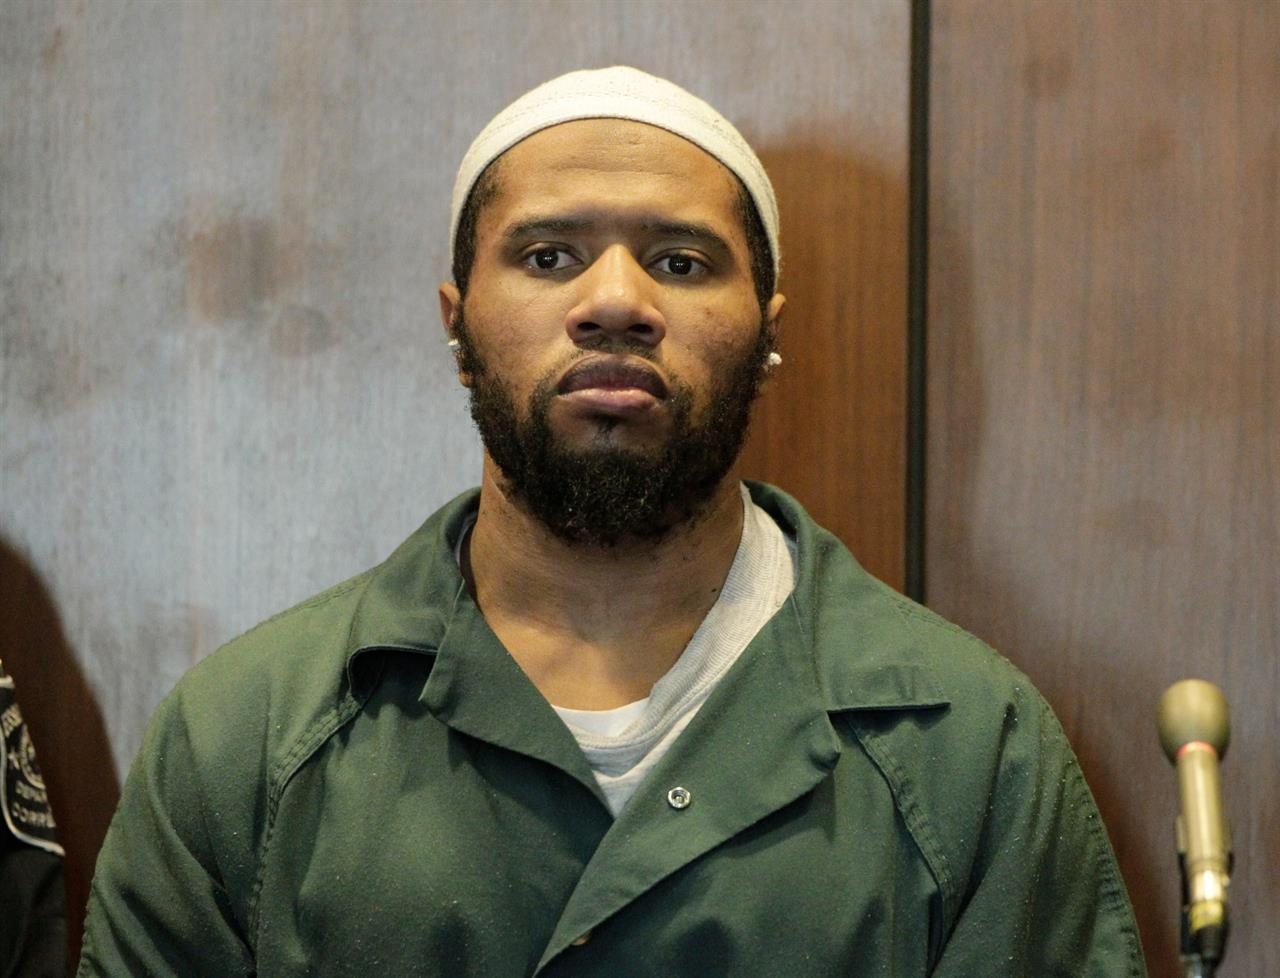 Man on a 'jihad' sentenced to life without parole for murder